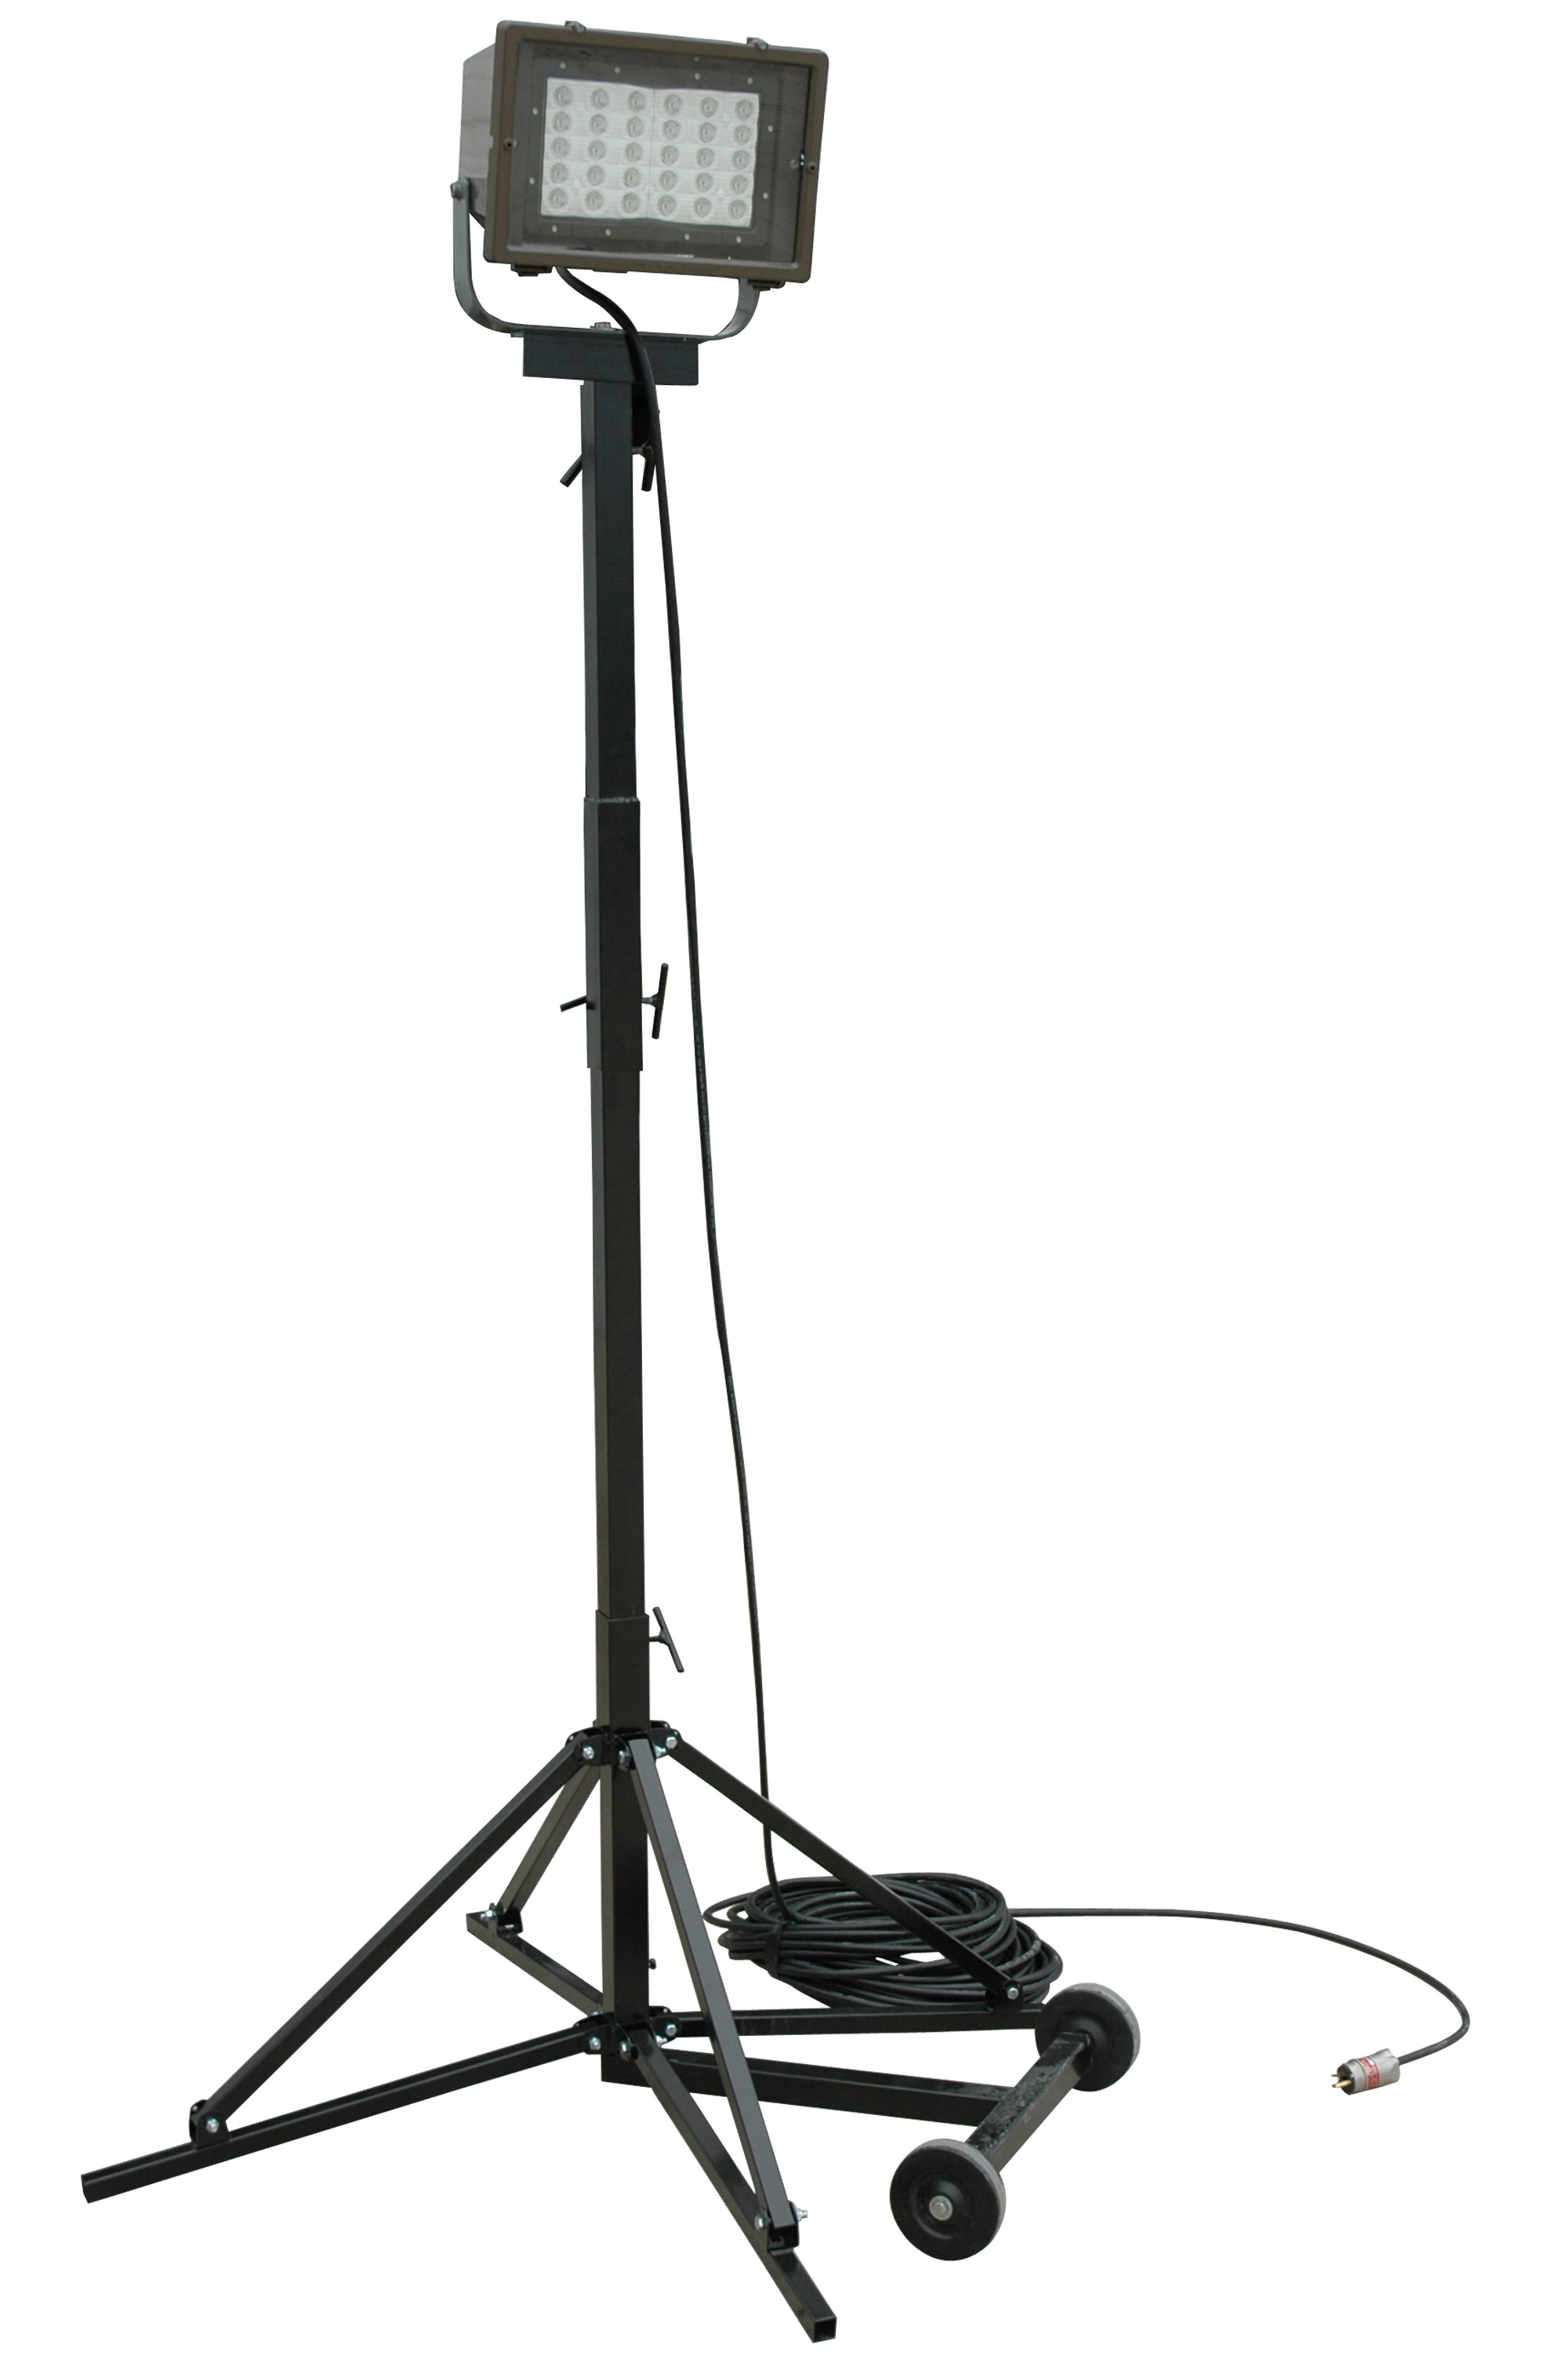 Larson Electronics Releases Adjustable Led Light Tower